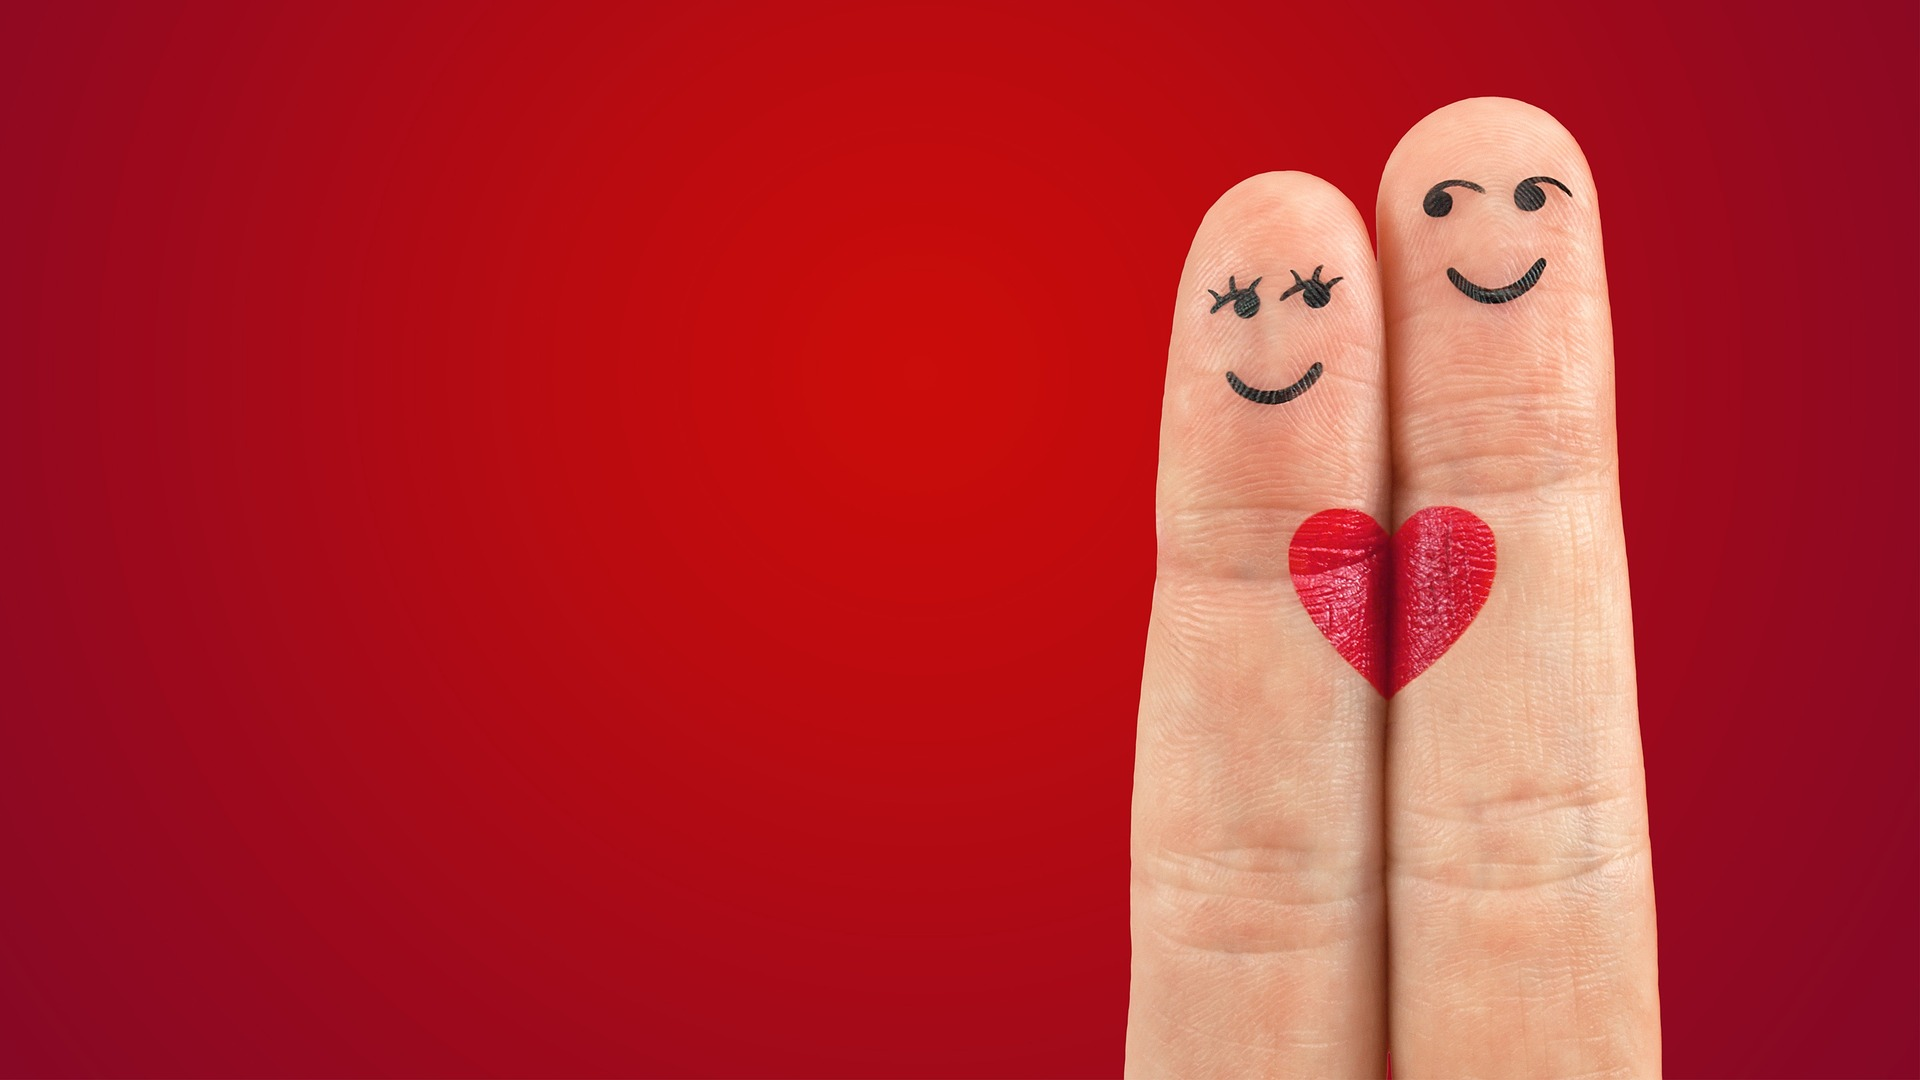 Two fingers with faces drawn on them, with a red background